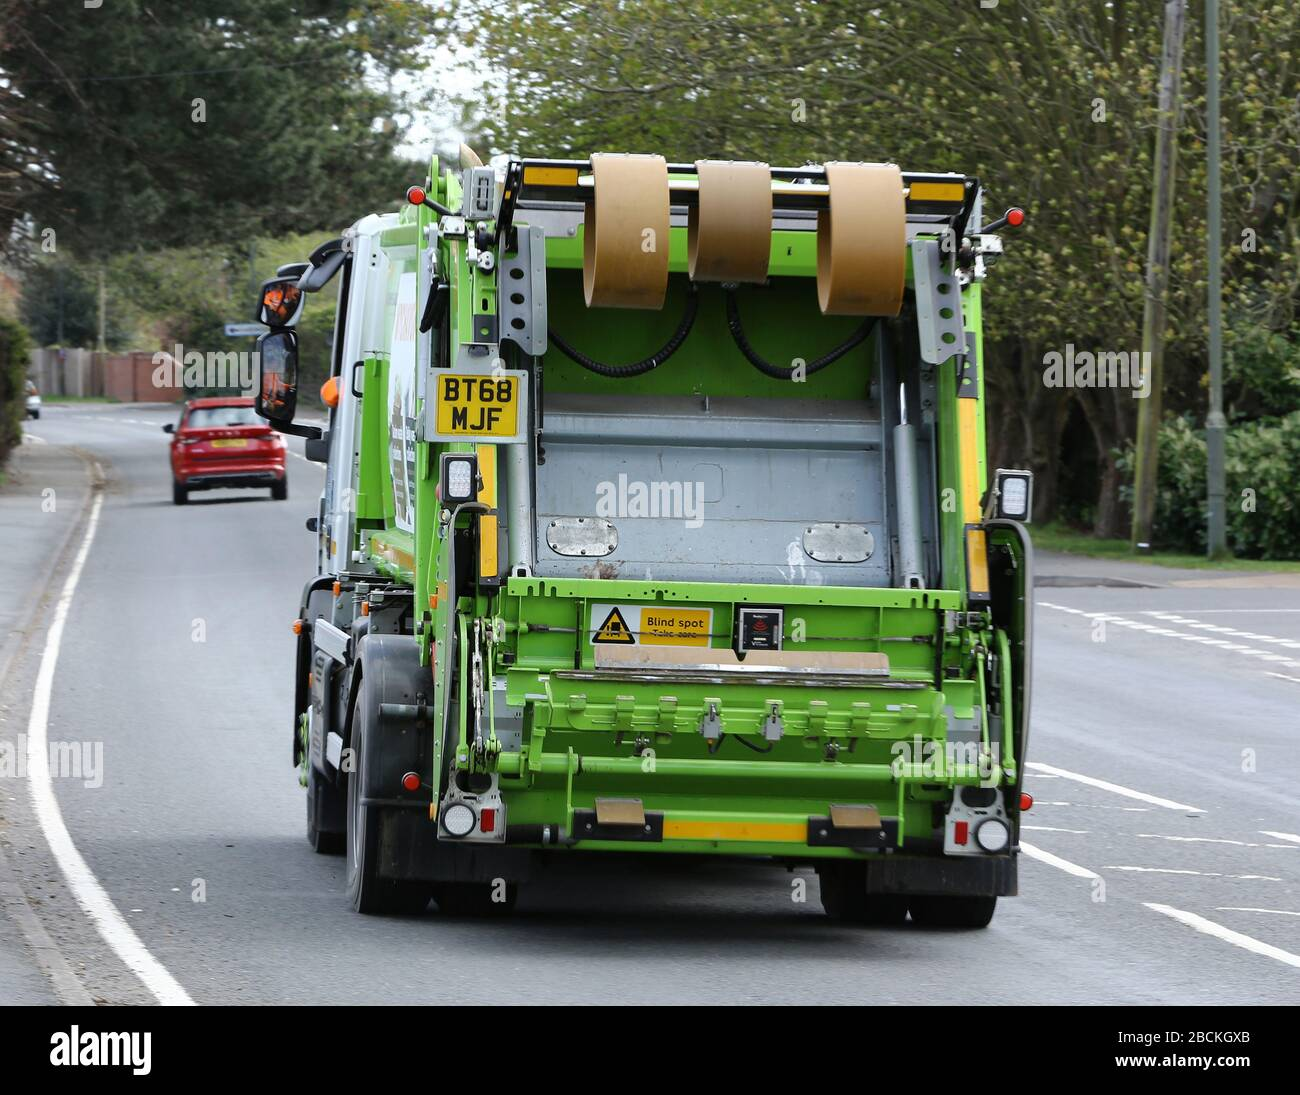 Council Rubbish Collectors providing an Essential Service during the Pandemic Lockdown. Stock Photo